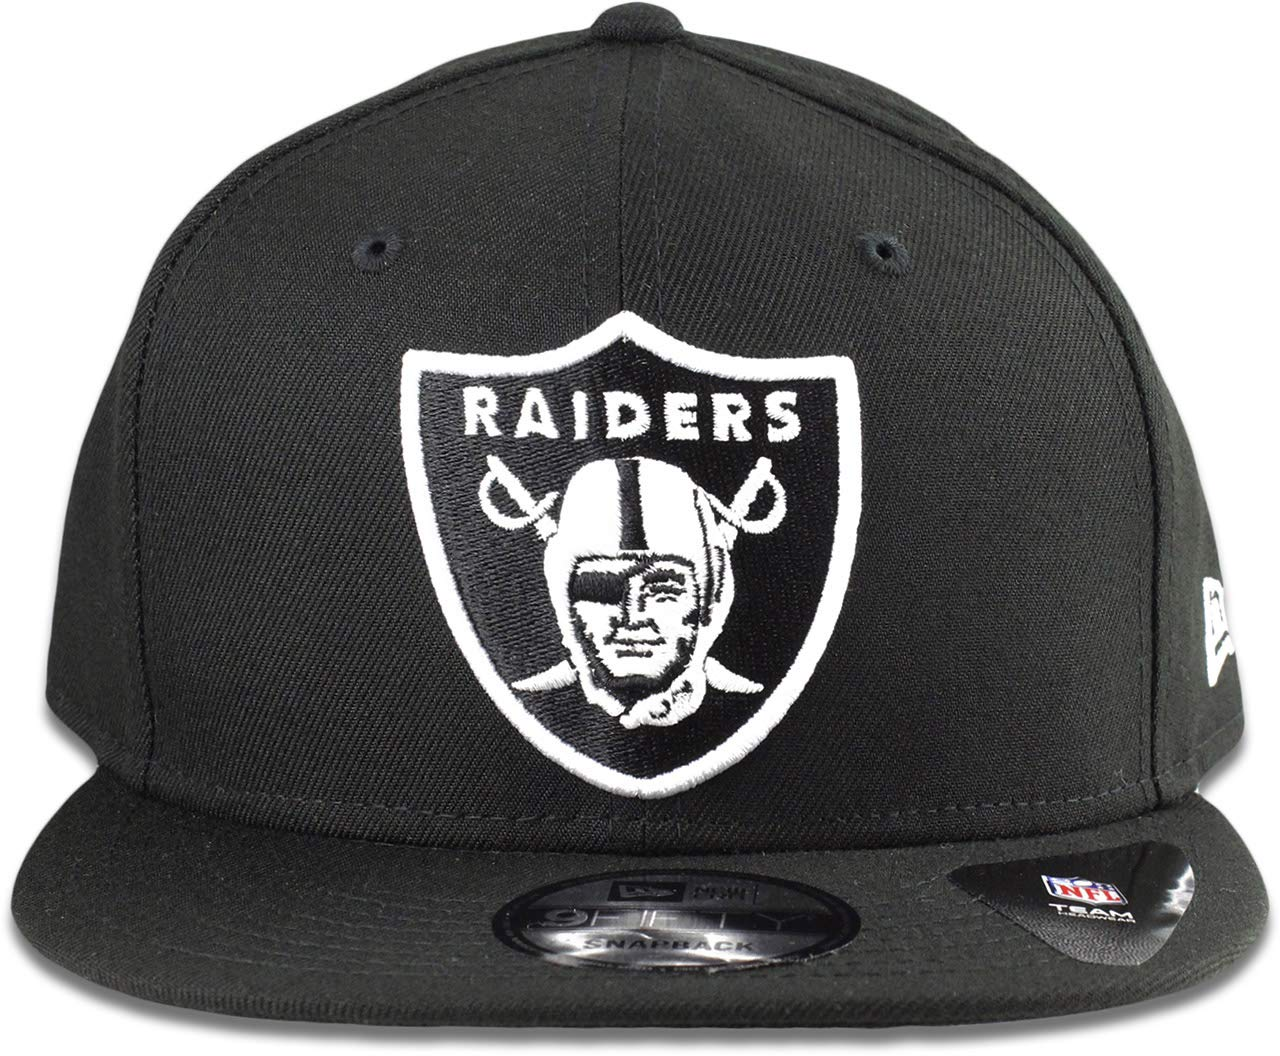 38dc16e5051 Amazon.com   New ERA NFL Oakland Raiders 950 Cap Limited Edition Black with  White   Sports   Outdoors